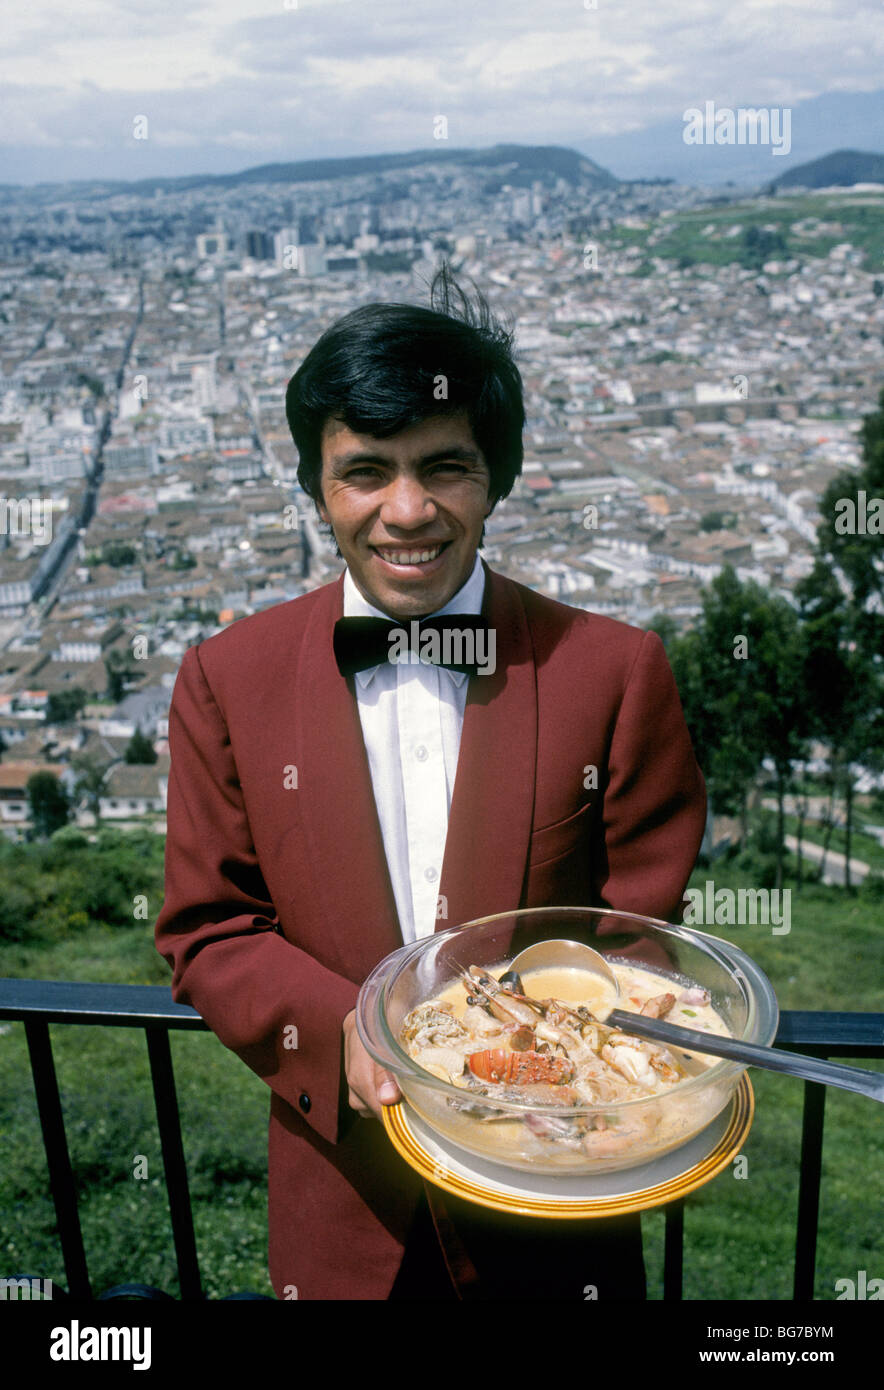 A waiter at an expensive restaurant in Quito, Ecuador, serves up a large bowl of seafood soup - Stock Image